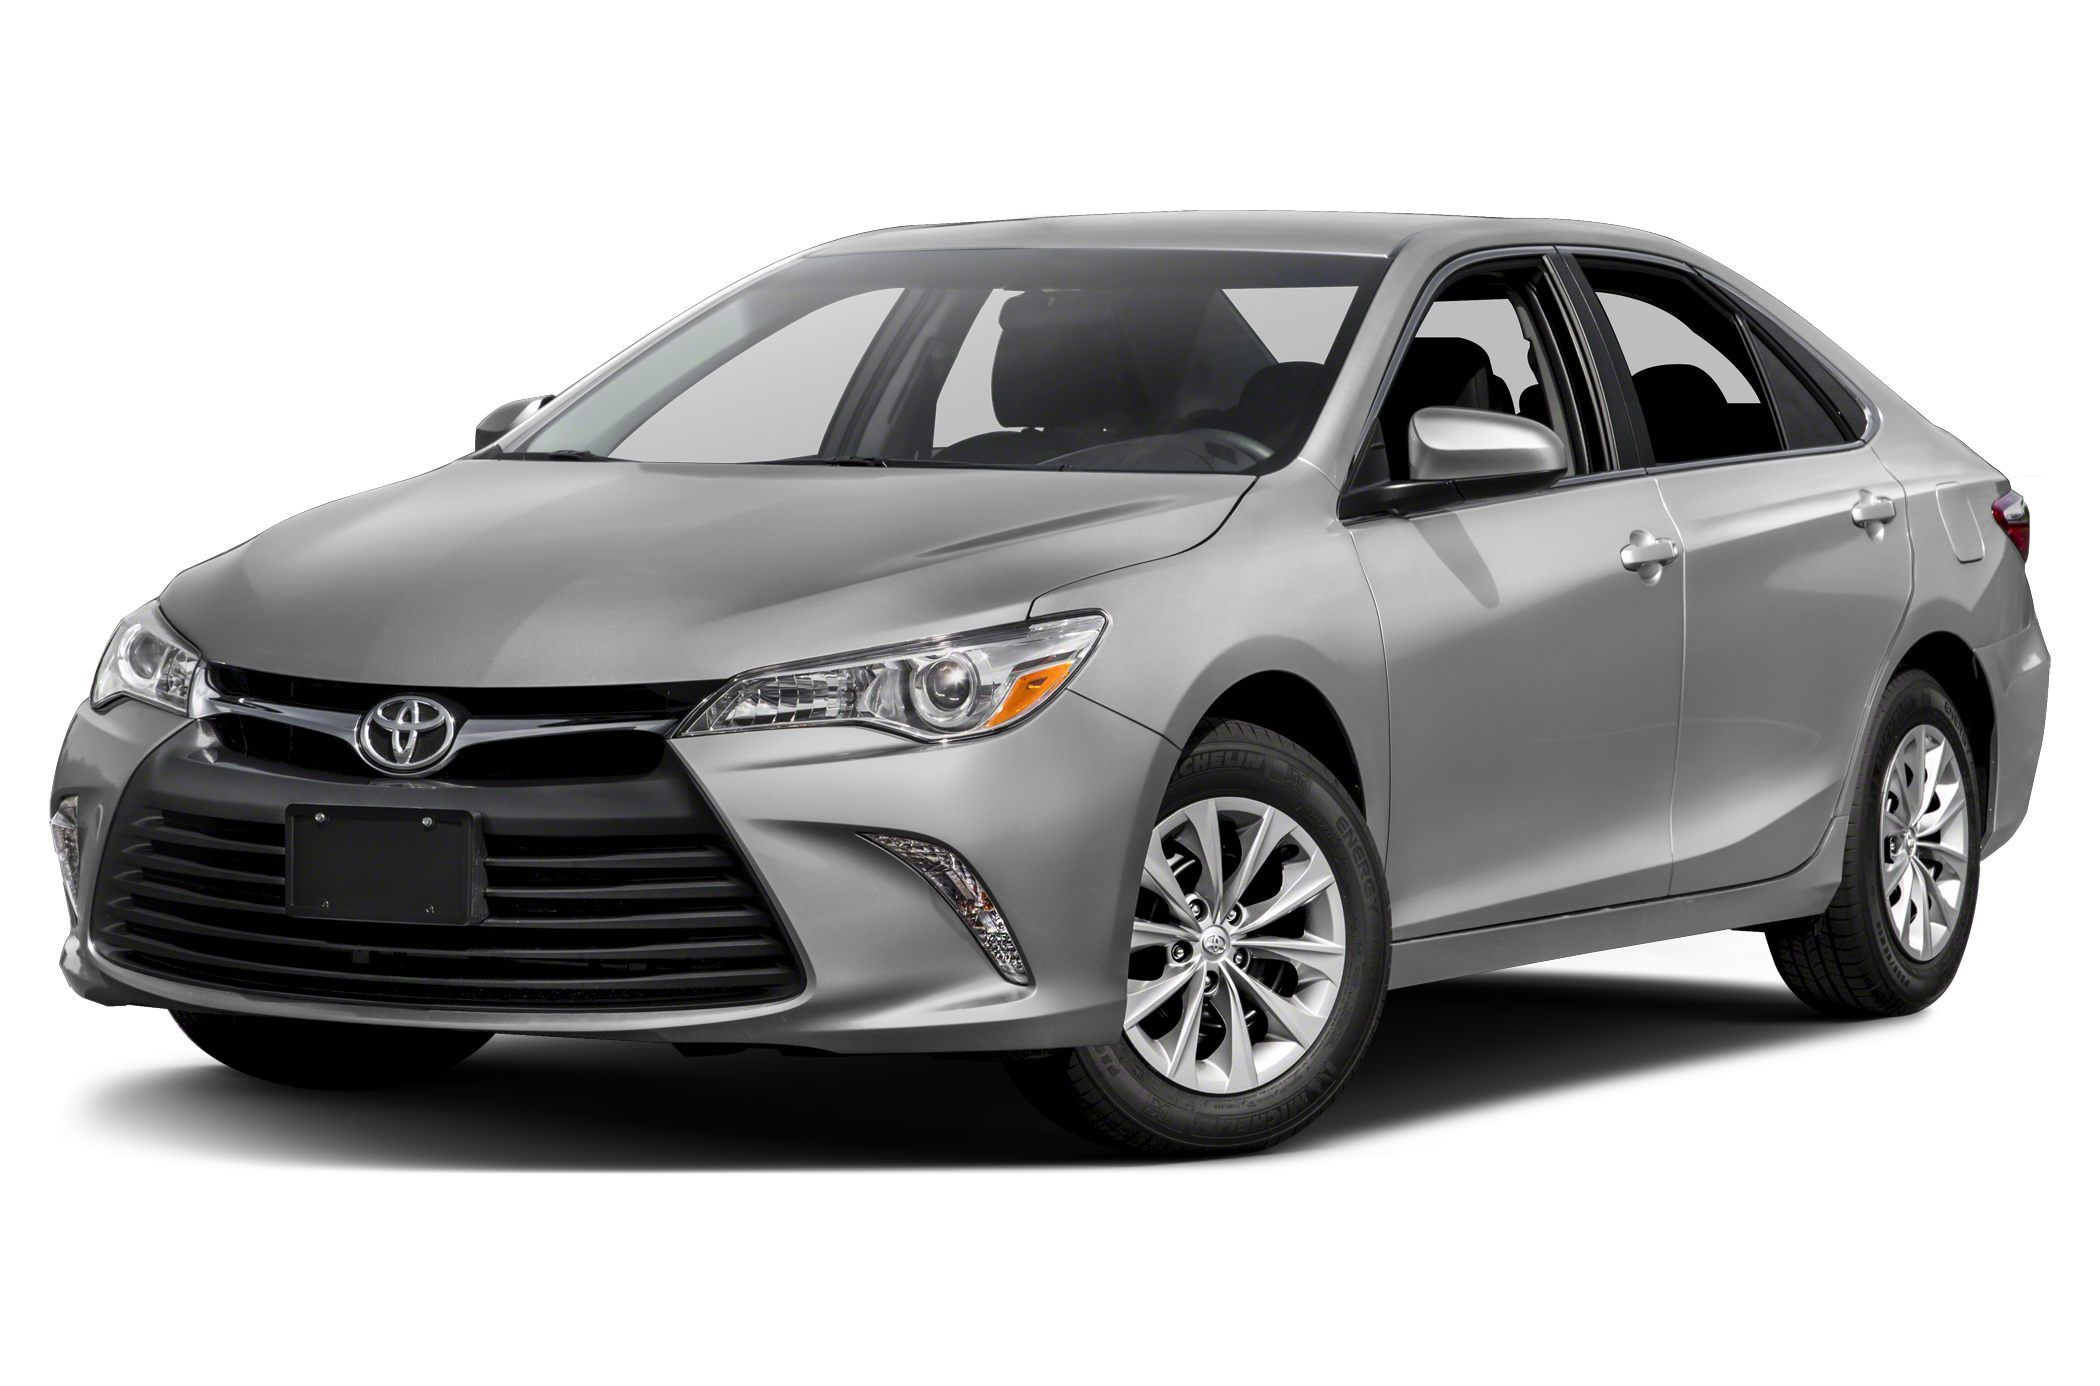 For Details On All New Toyota camry Cars In India Visit